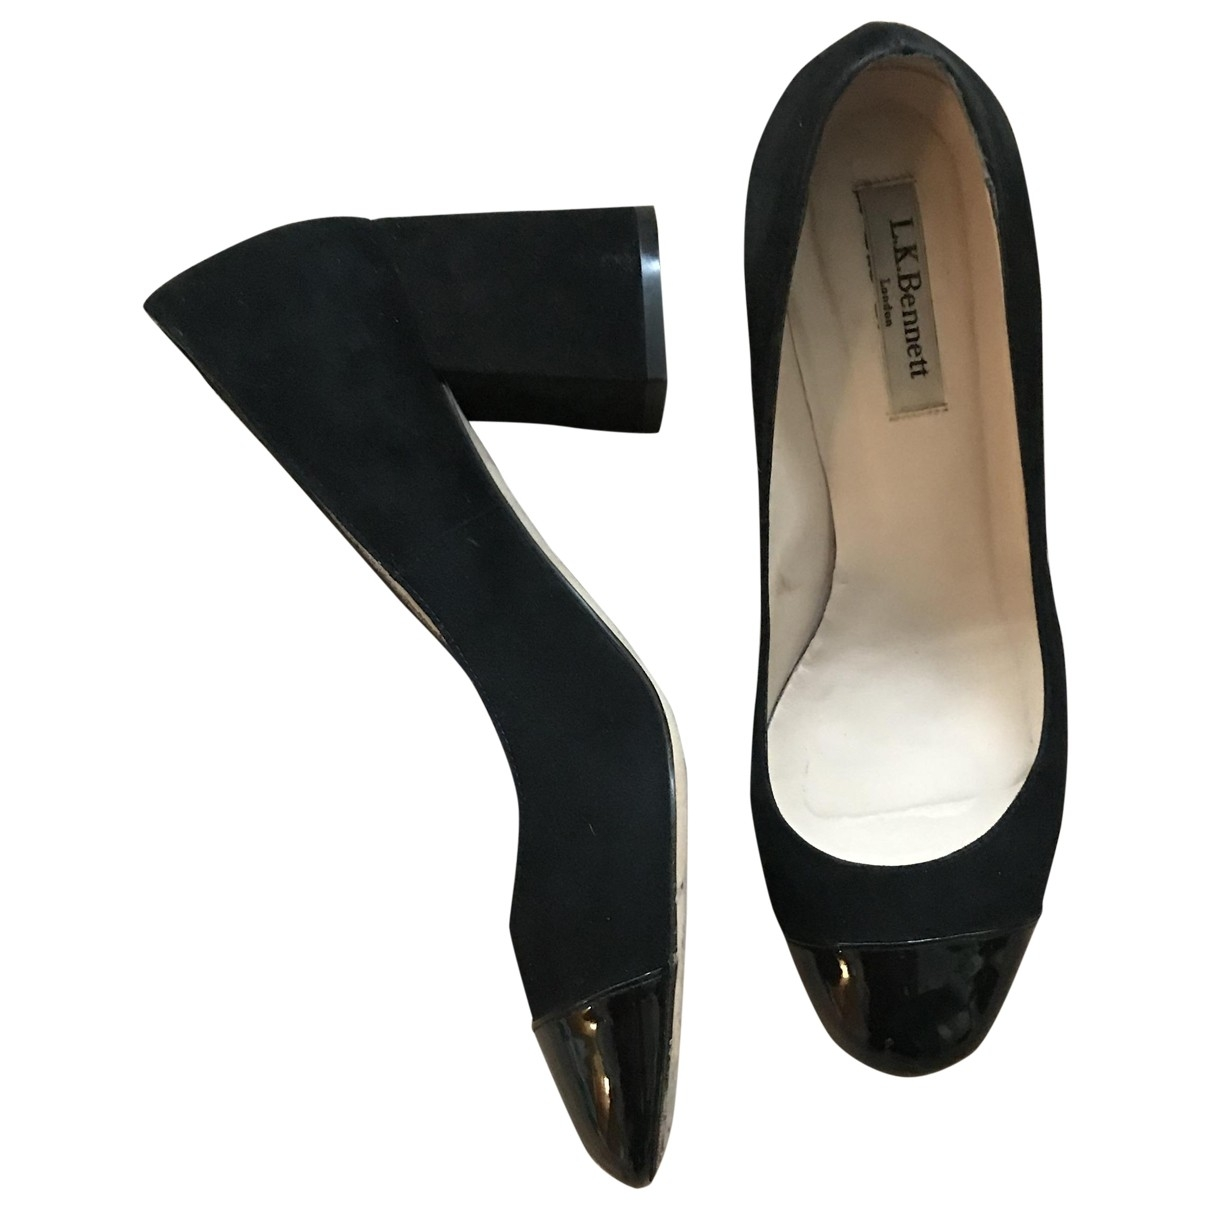 Lk Bennett \N Black Suede Heels for Women 39 EU